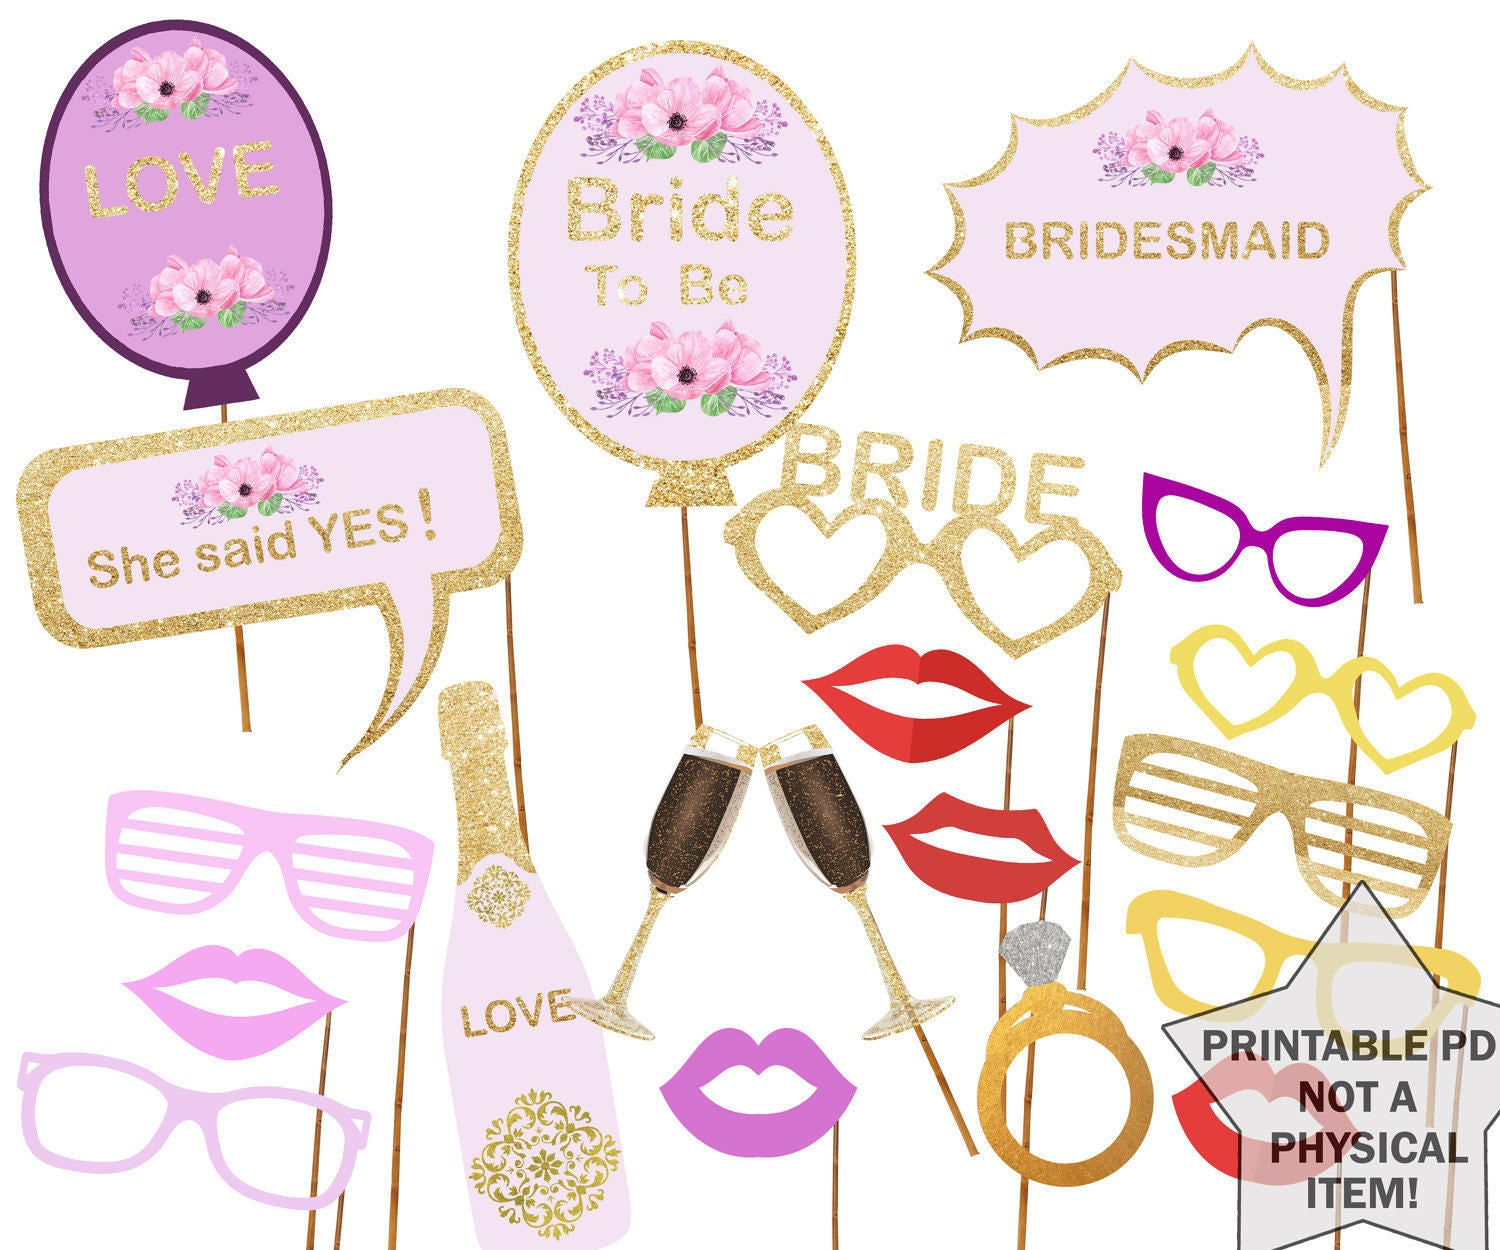 photo about Free Printable Bridal Shower Photo Booth Props identify Printable Bridal Shower Image Booth Props Bride Photobooth Props Bachelorette Printable Props Bachelorette Celebration Bride In the direction of Be